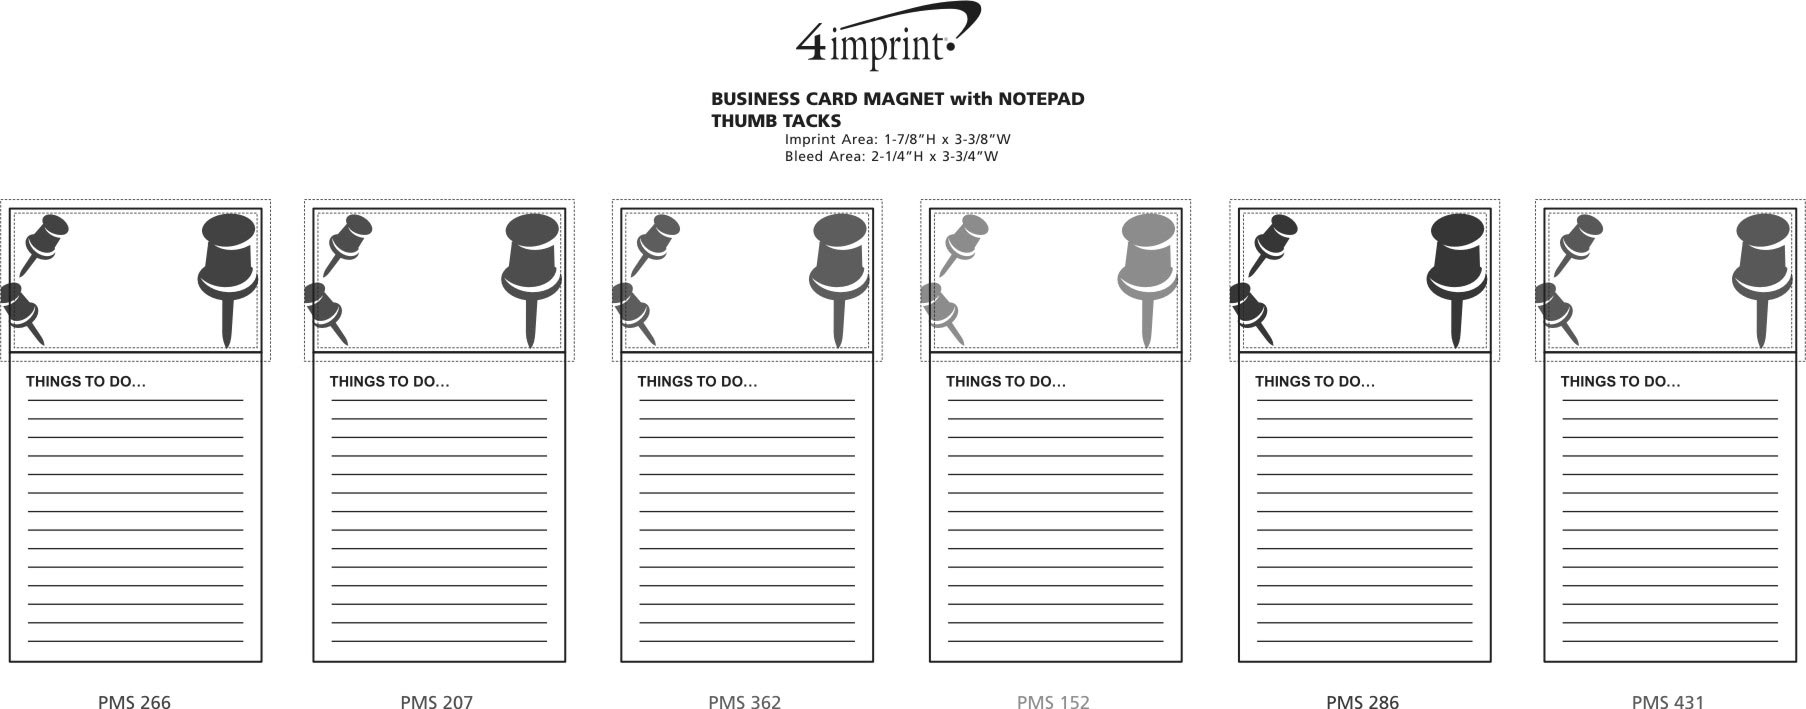 4imprint.com: Bic Business Card Magnet with Notepad - Thumb Tacks ...